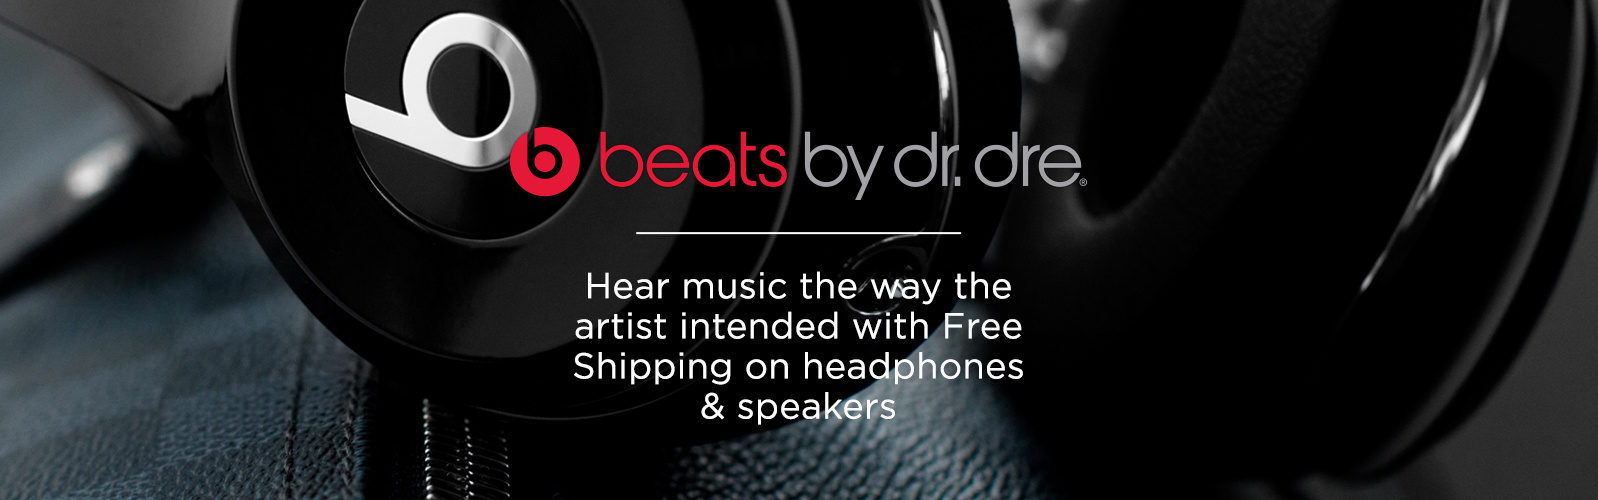 Beats — Hear music the way the artist intended with Free Shipping on headphones & speakers